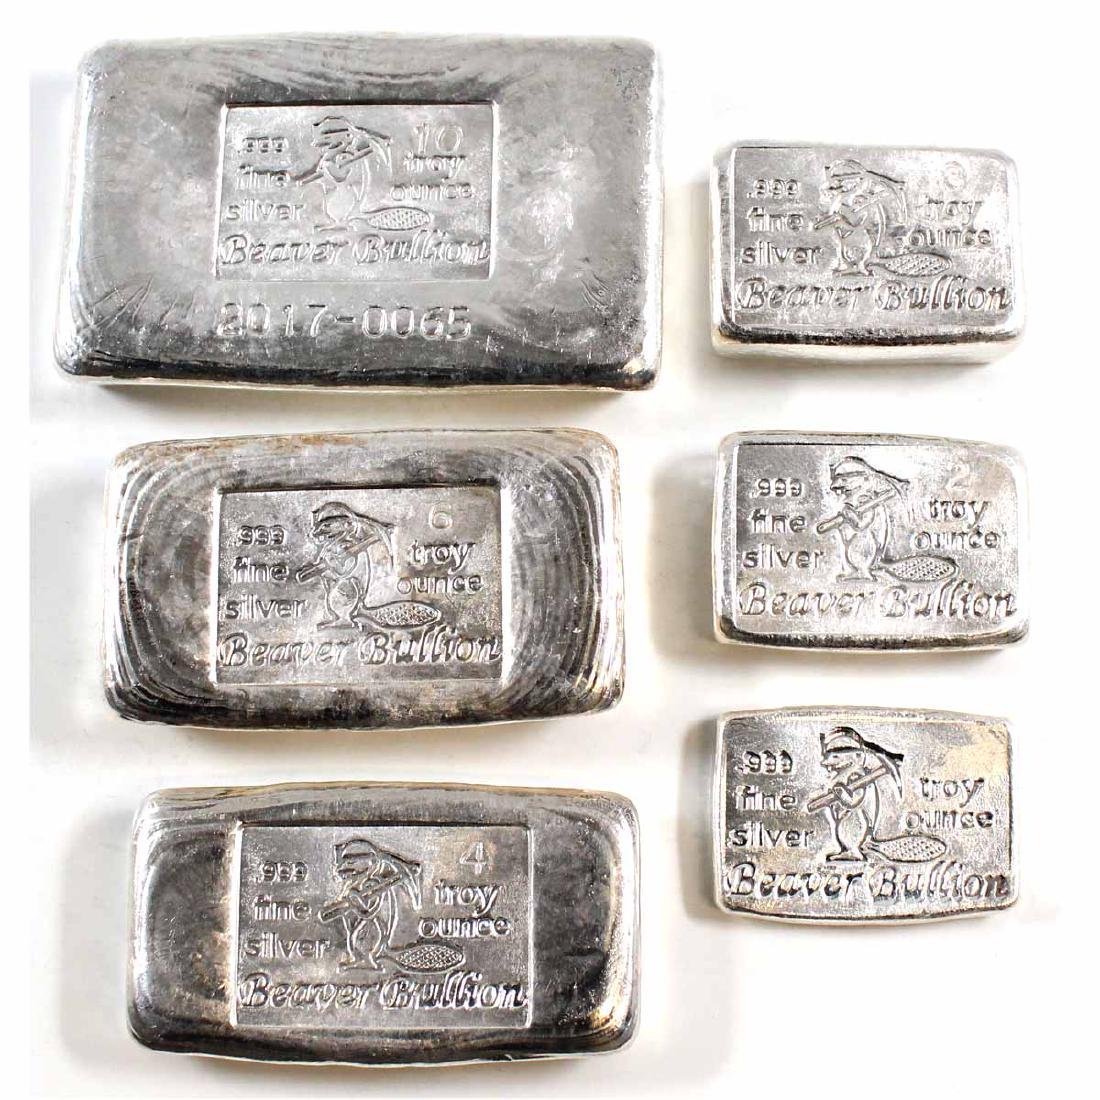 Lot of 6 Different Beaver Bullion Fine Silver Bars (TAX